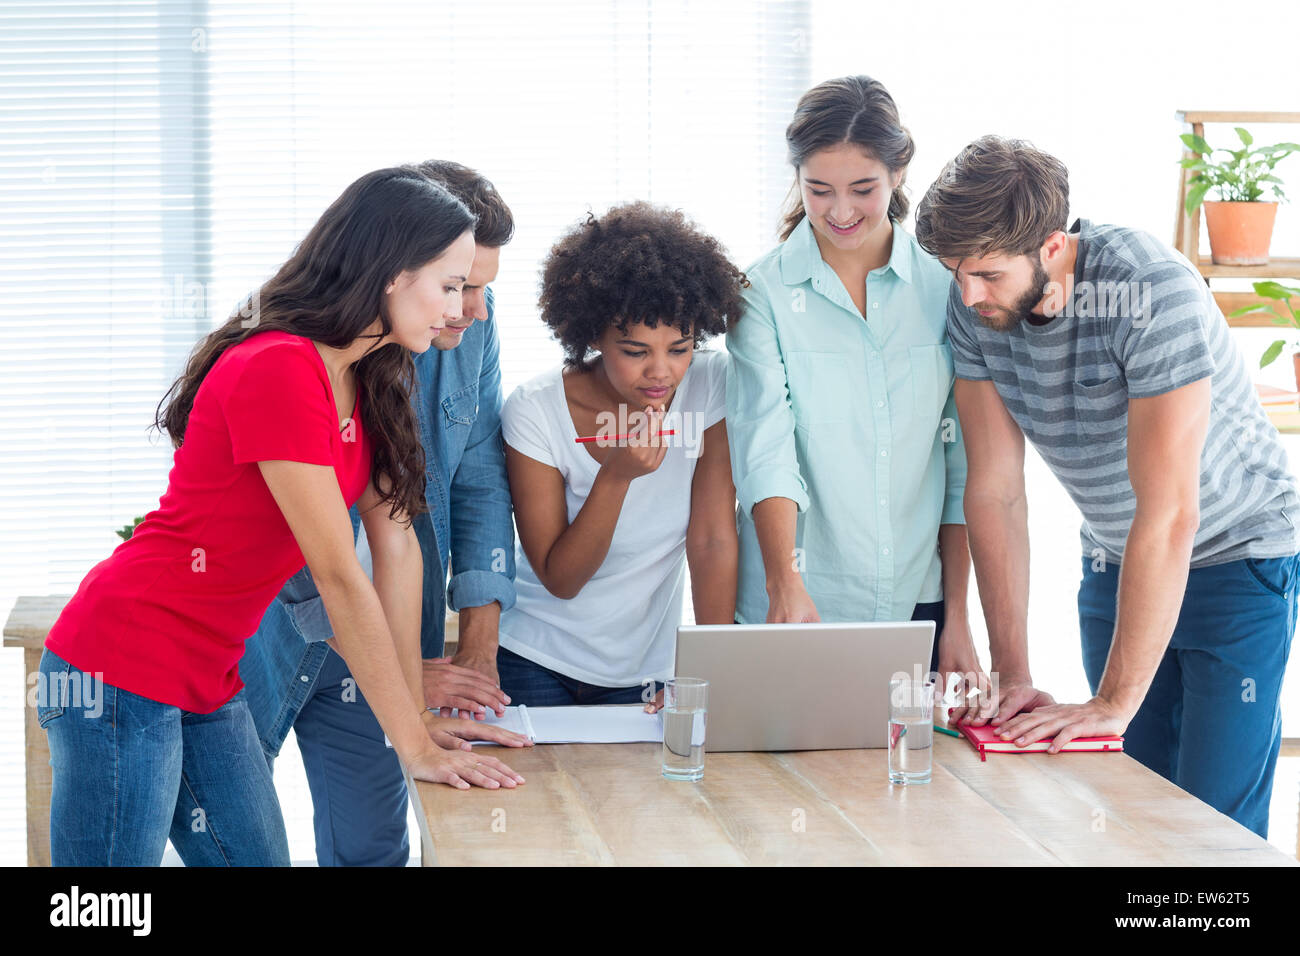 Colleagues gathered around a laptop at office - Stock Image